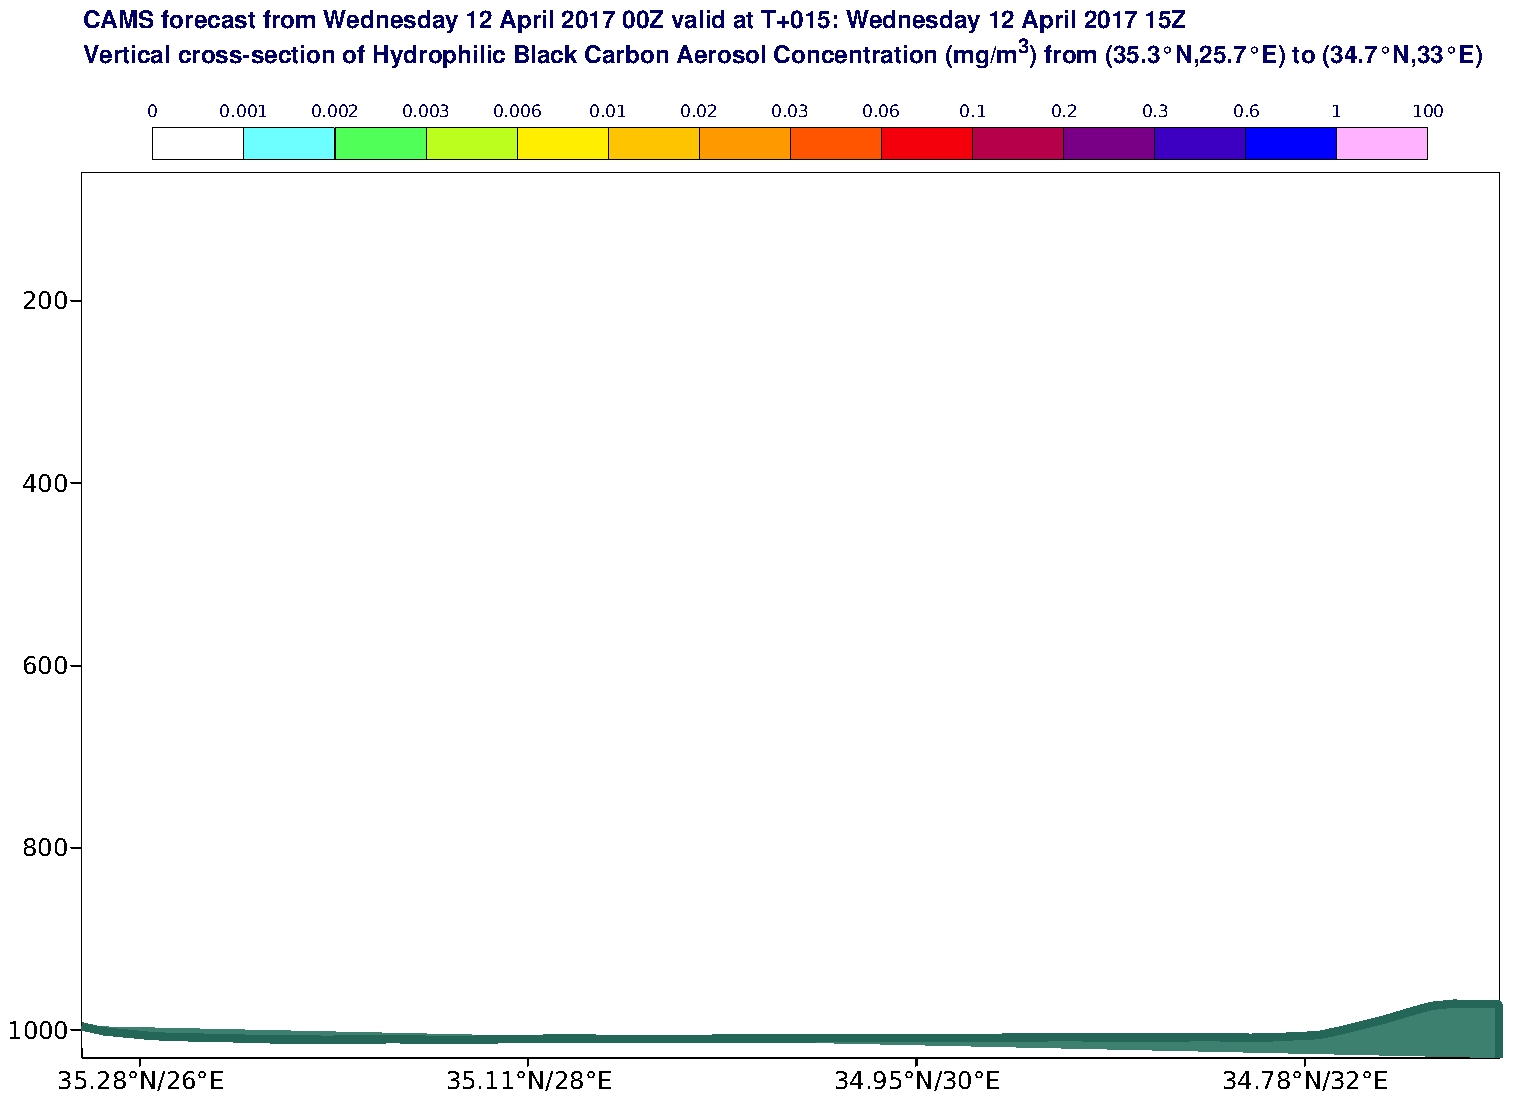 Vertical cross-section of Hydrophilic Black Carbon Aerosol Concentration (mg/m3) valid at T15 - 2017-04-12 15:00